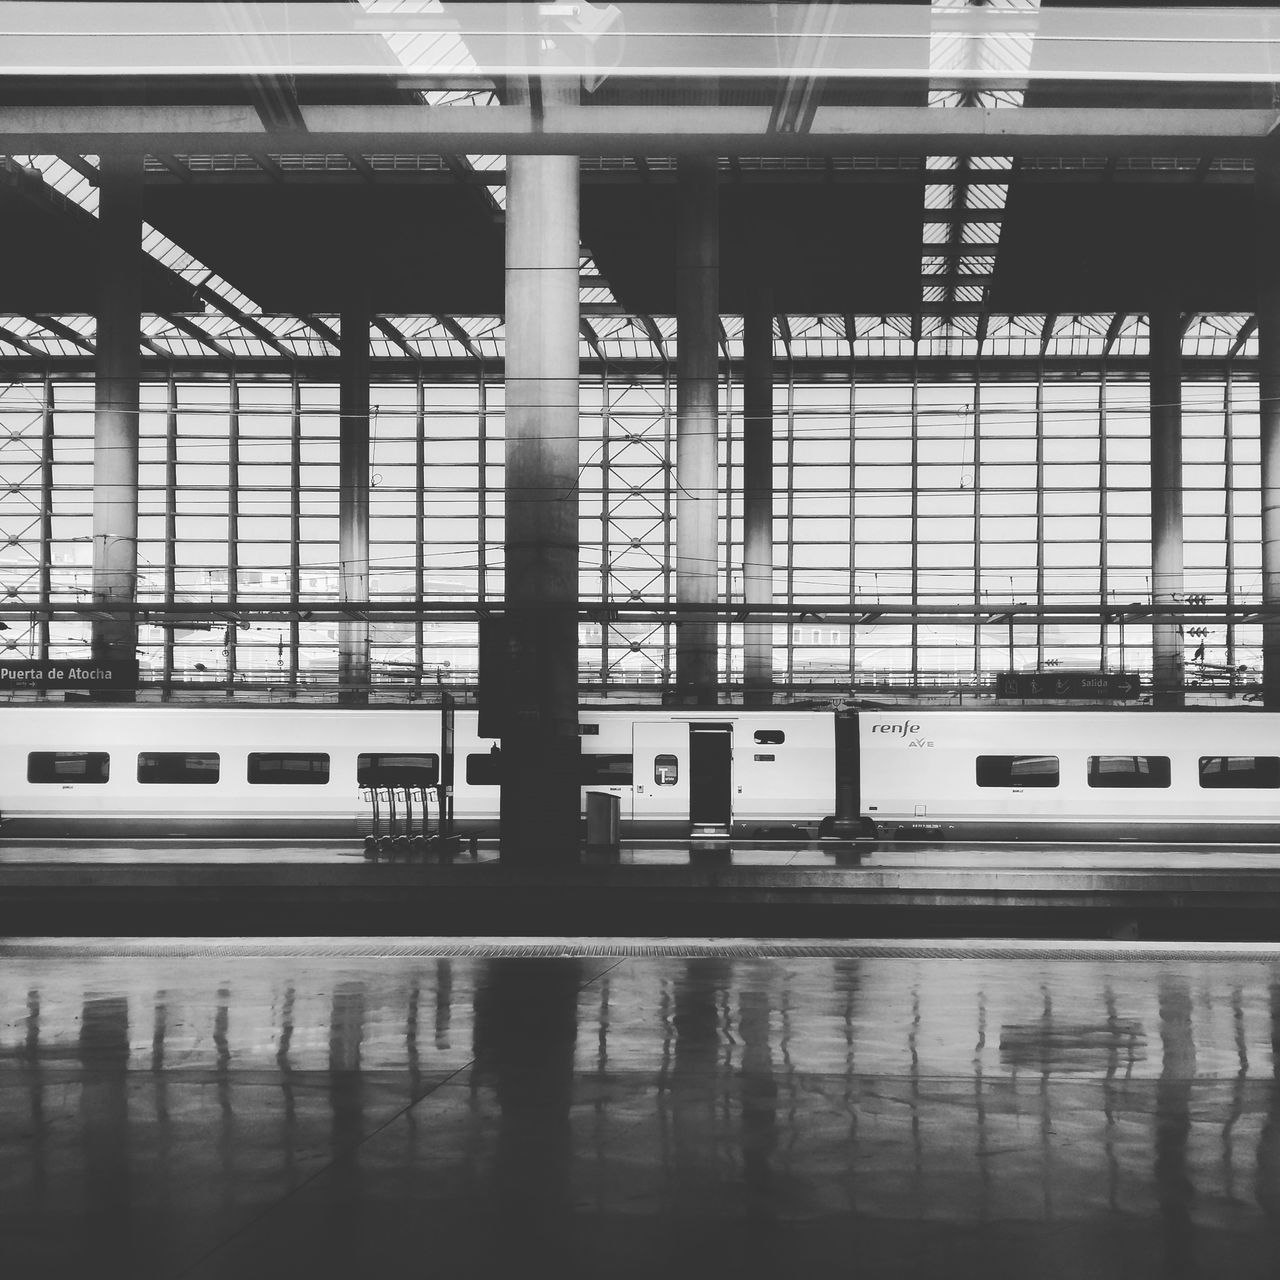 Ida y vuelta Trainstation Train Trip Madrid Atocha Move Photography Bw Blackandwhite Blackandwhite Photography Architecture Garbla